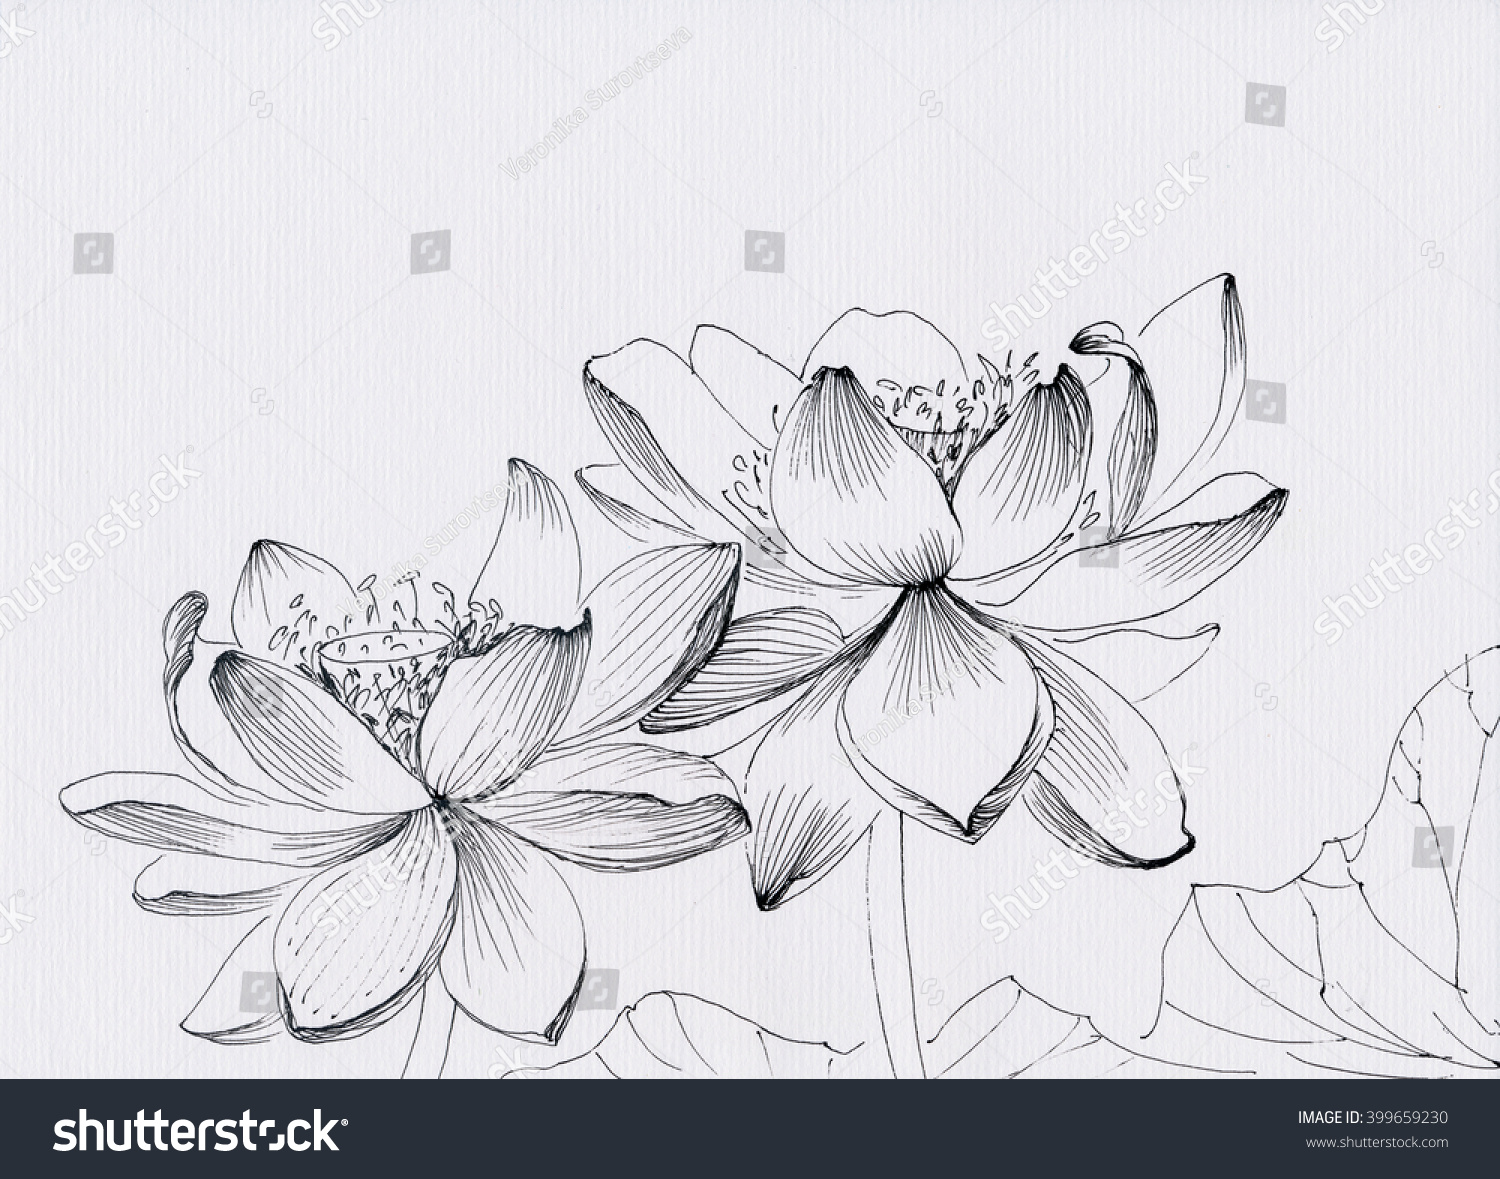 Lotus Flower Line Art Ink Pen Stock Illustration 399659230